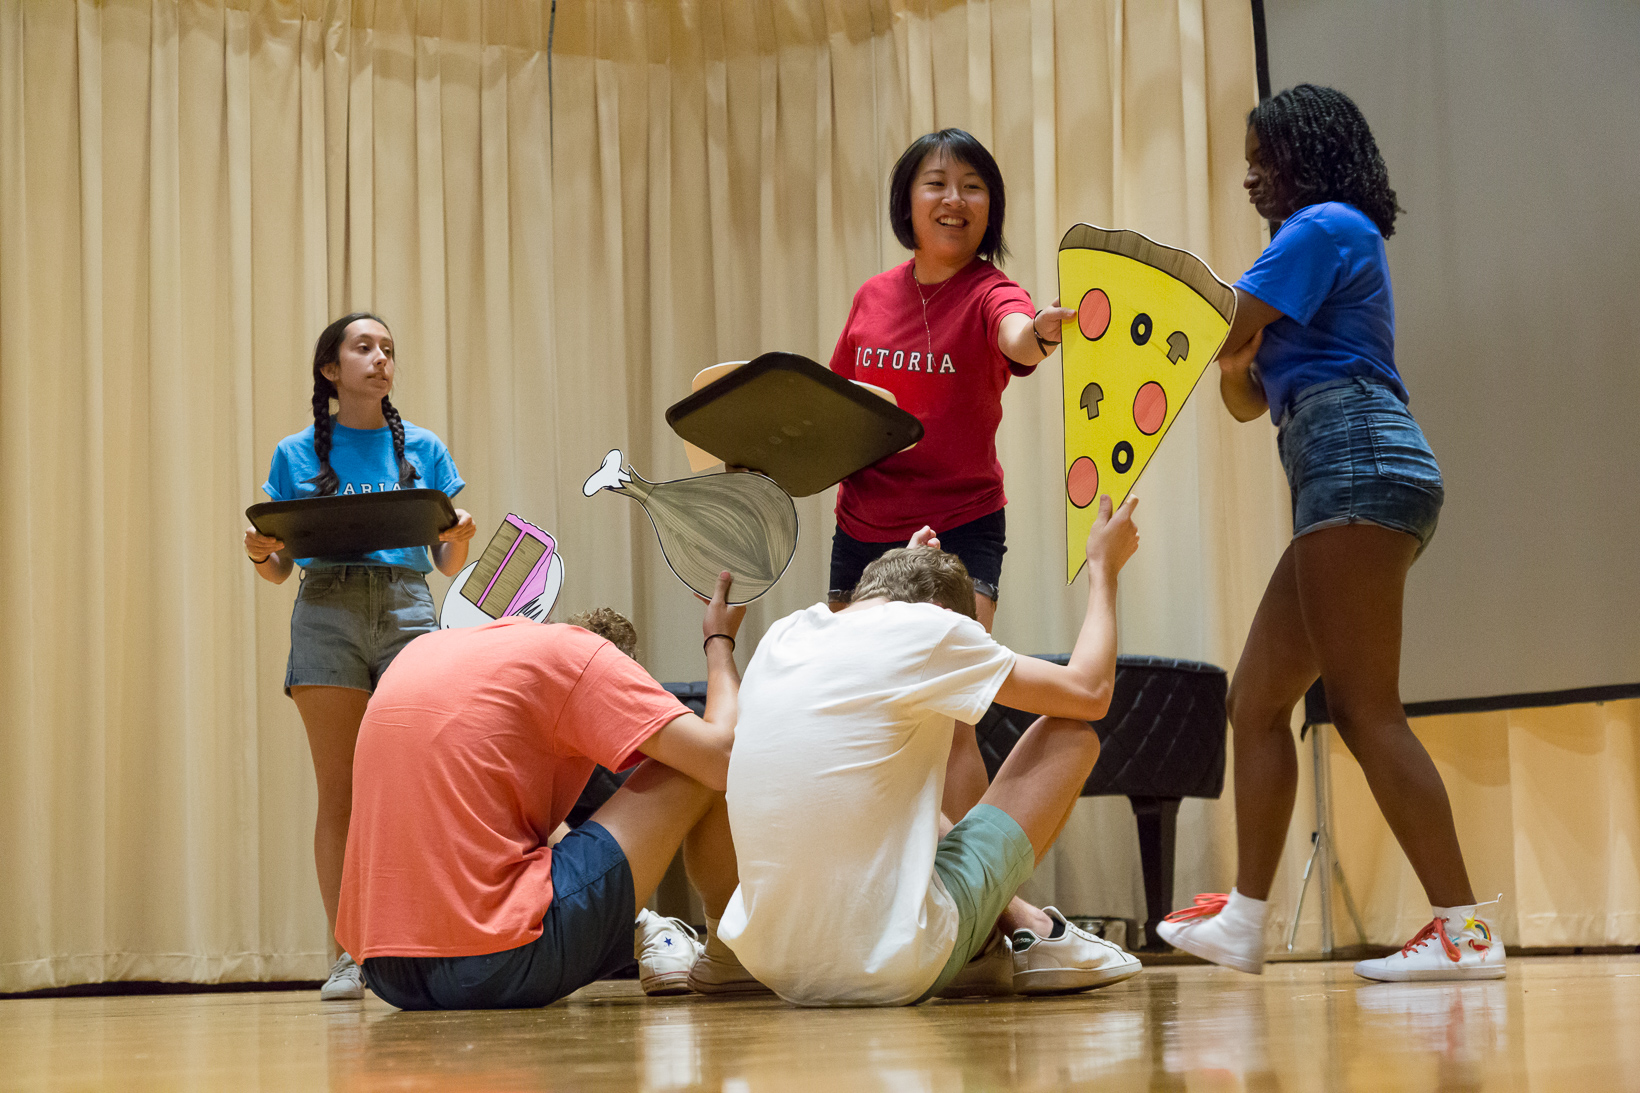 Students holding large cut outs of food perform a skit about healthy attitudes towards nutrition.